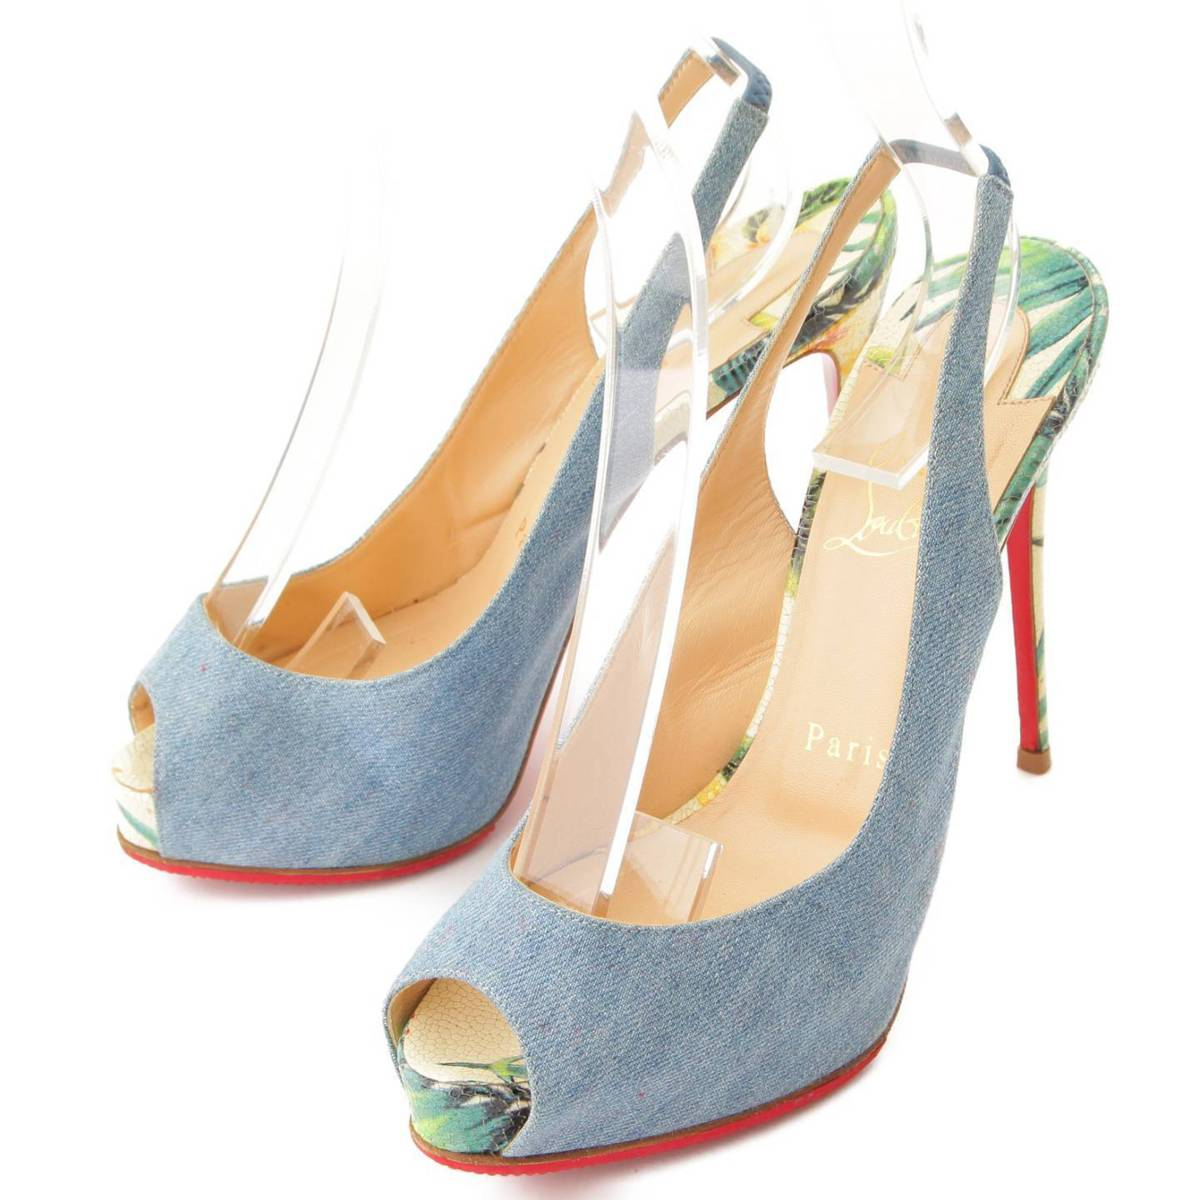 Christian Louboutin PRIVATE NUMBER バックスリング デニム パンプス ブルー 36 1/2 77174【正規品】【送料無料】